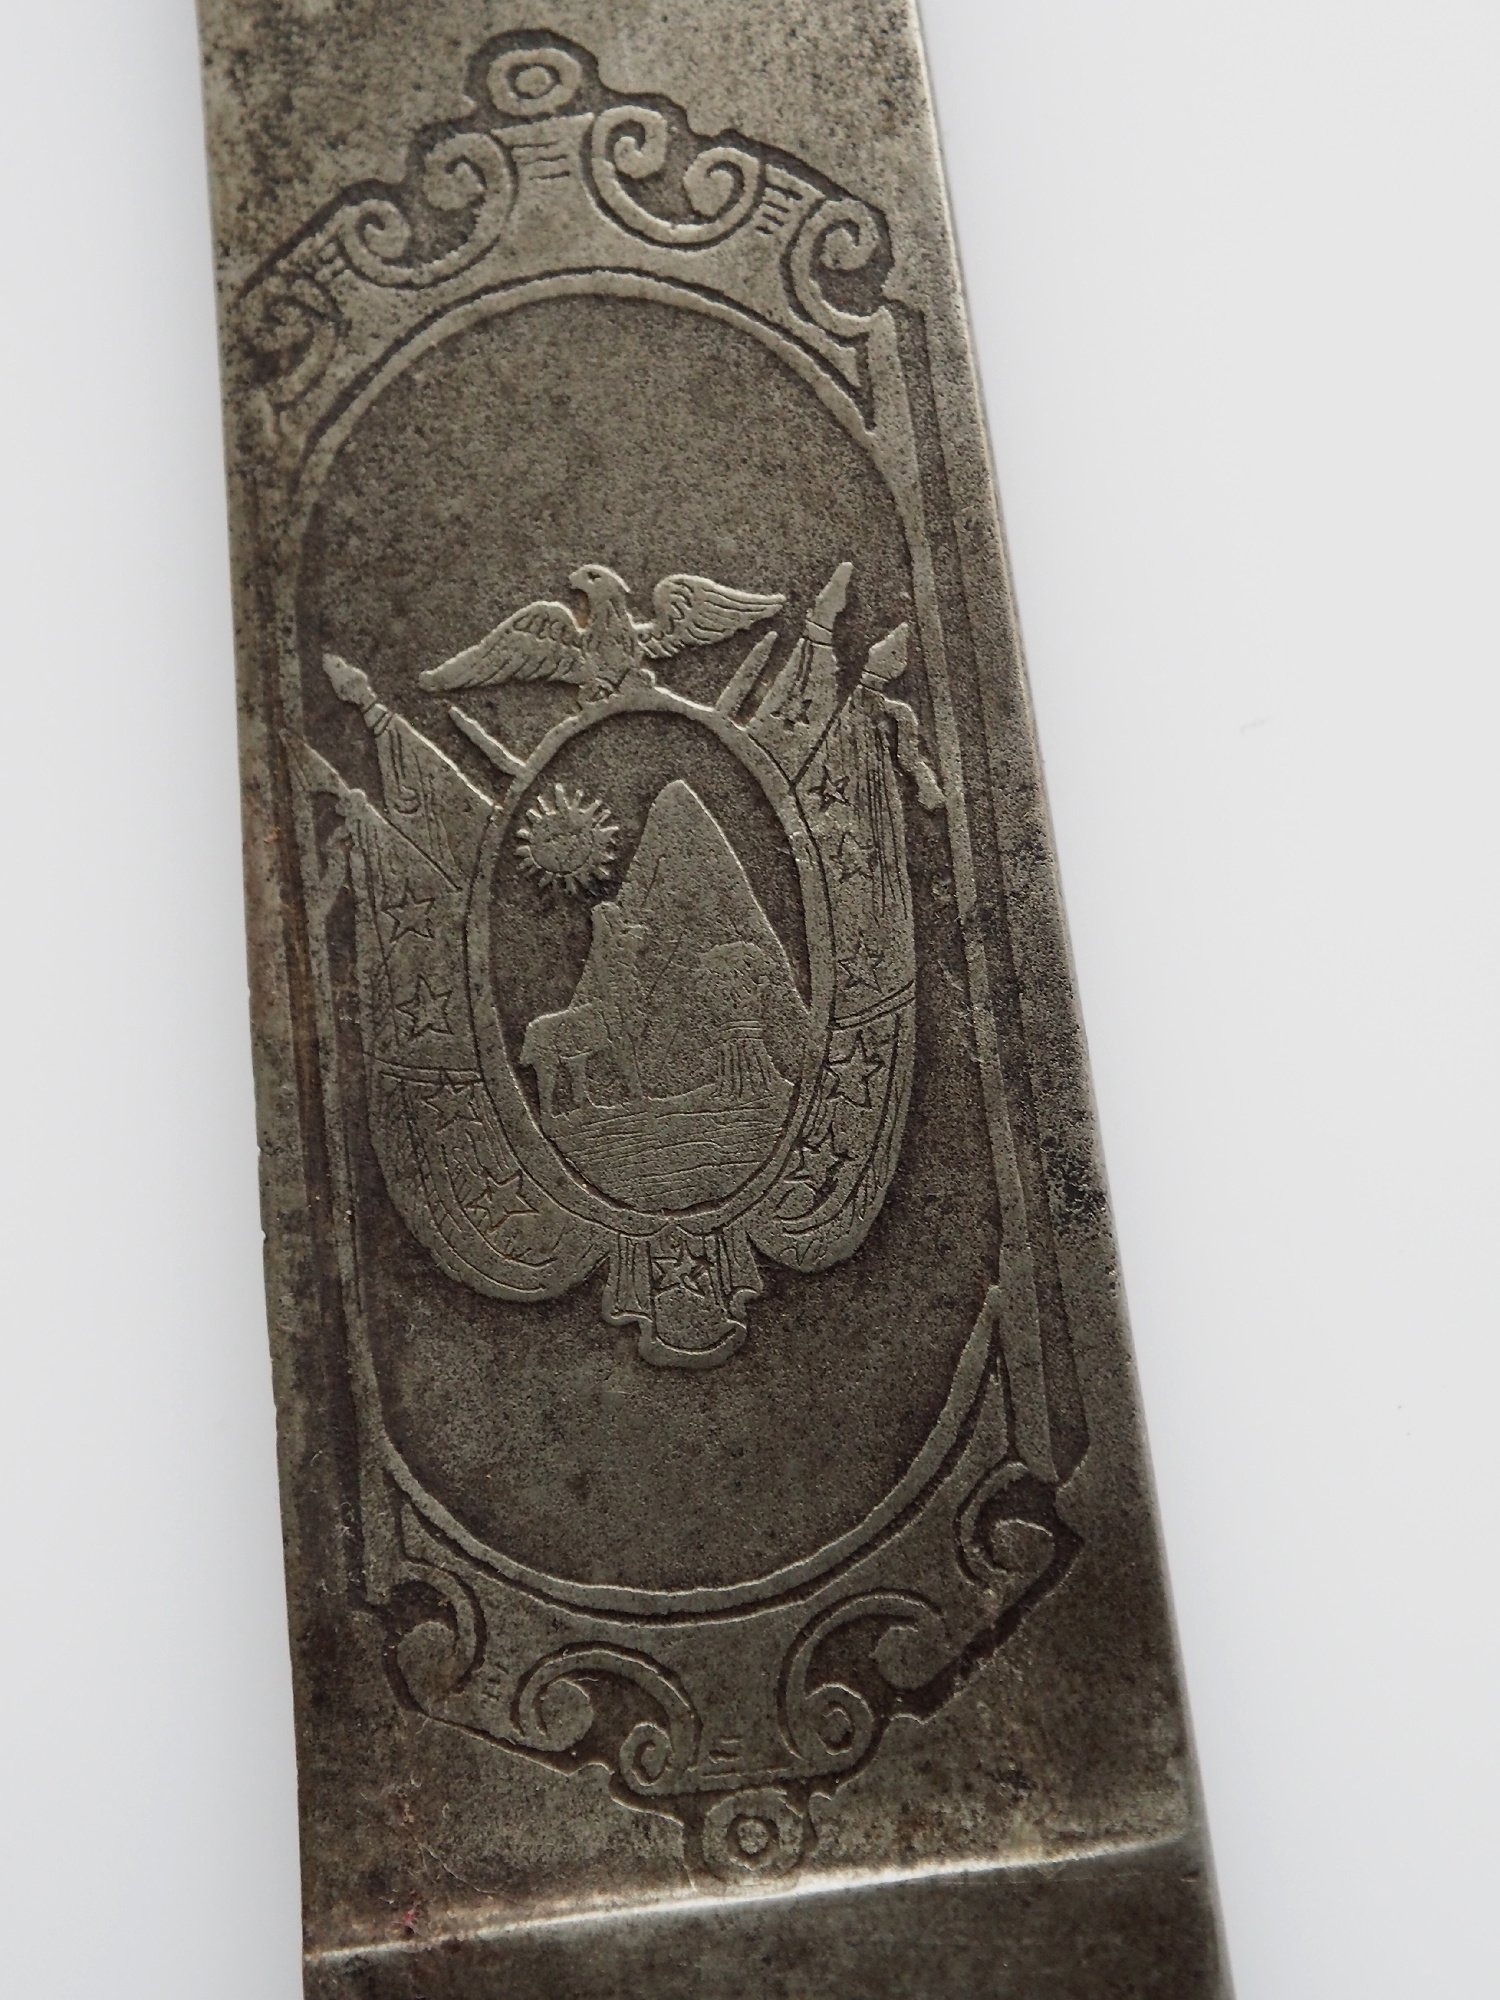 Antique knife withe bolivia coat of arms Leather scabbard No: EB/1